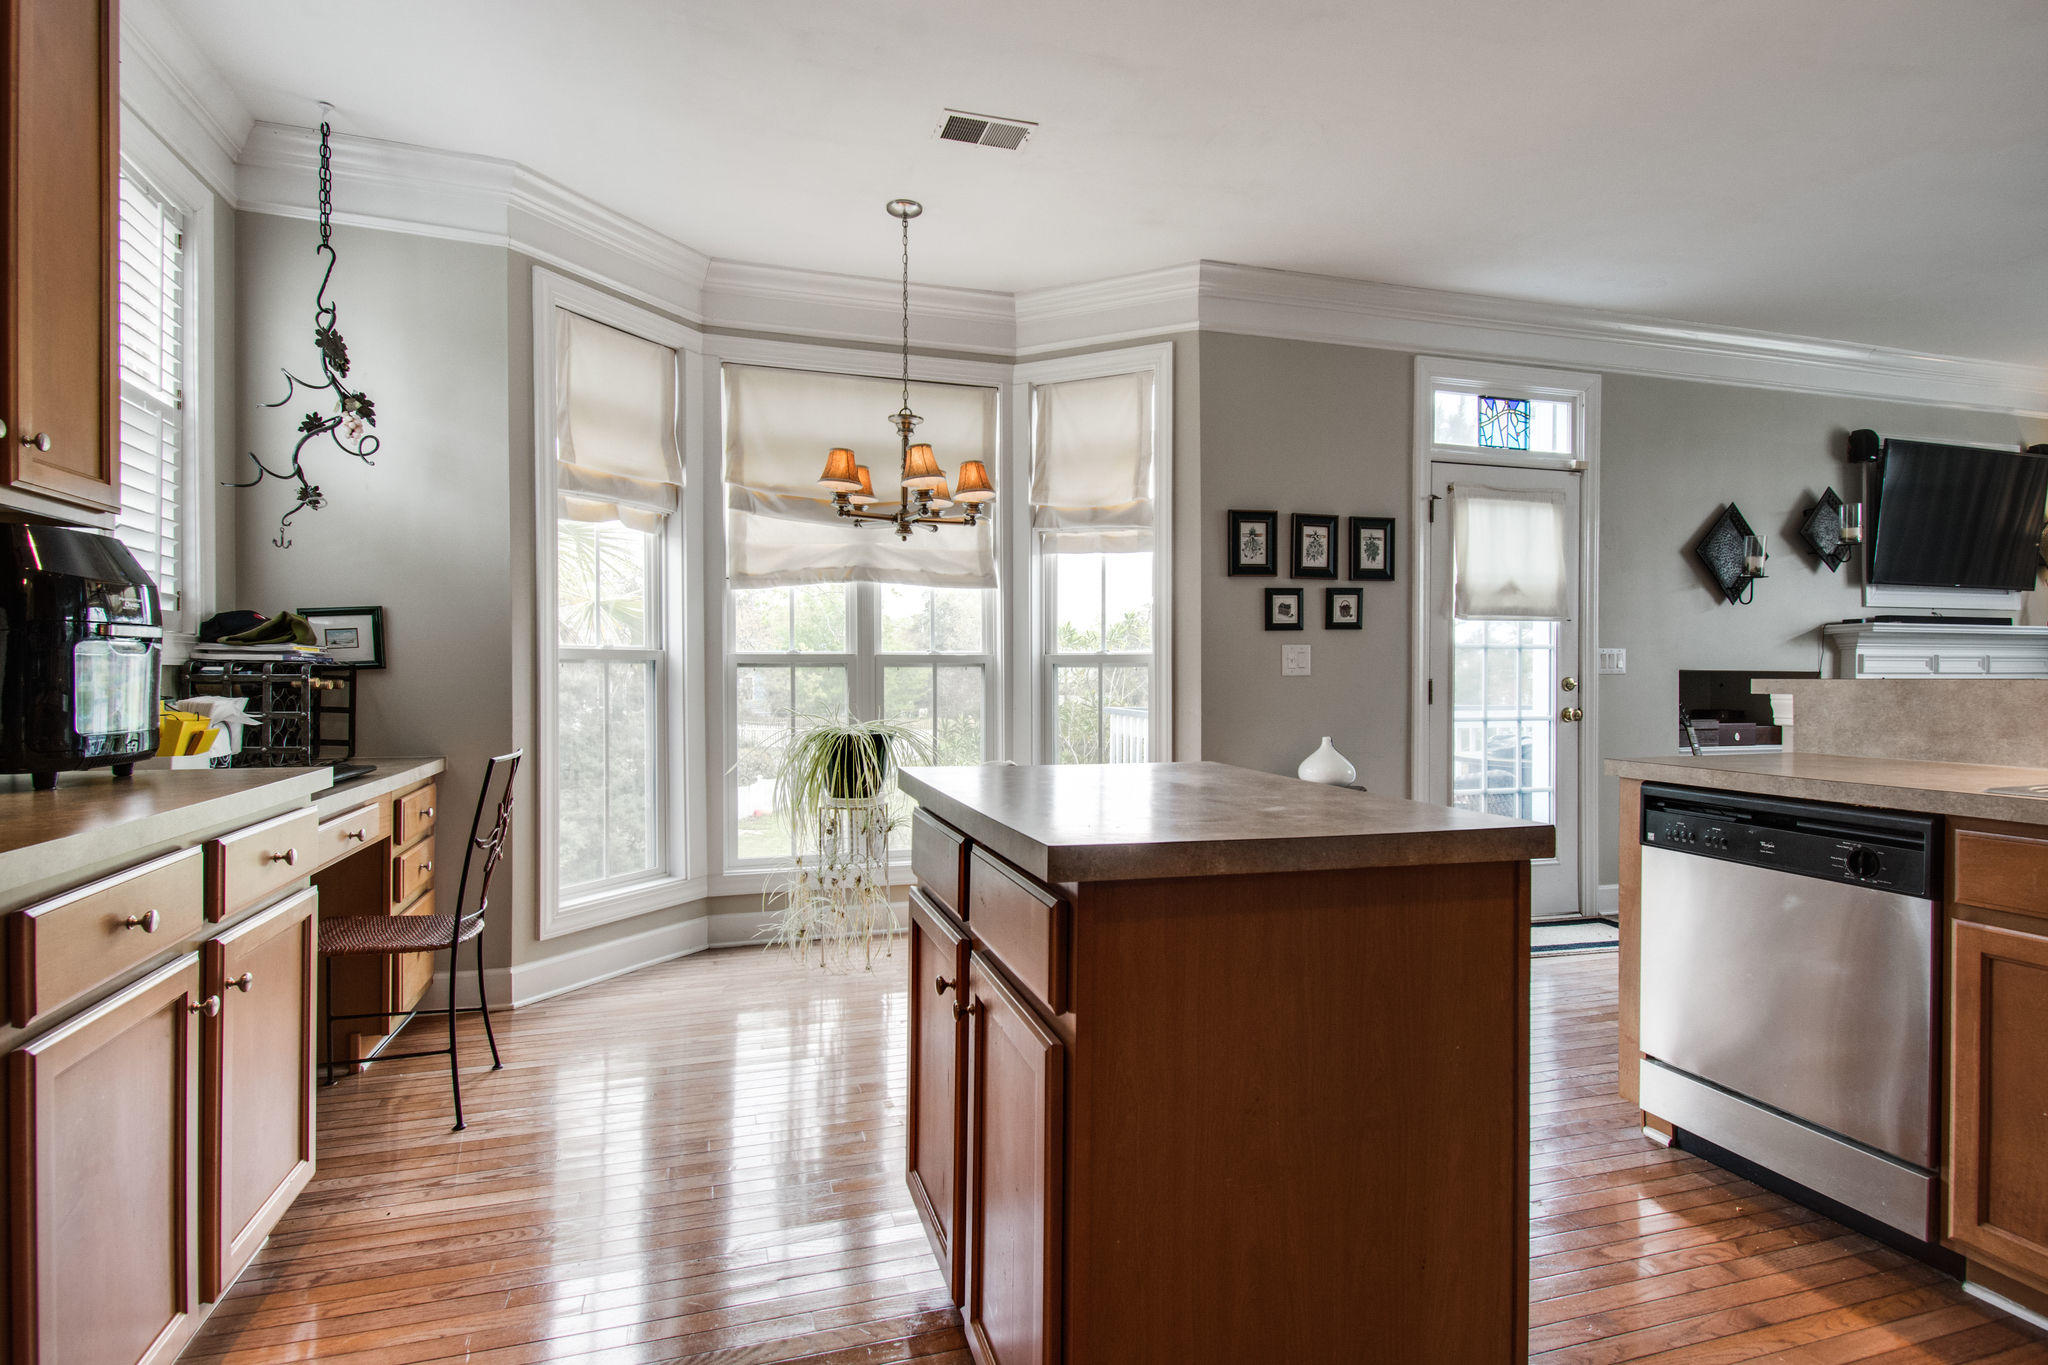 Rivertowne On The Wando Homes For Sale - 2226 Marsh, Mount Pleasant, SC - 27